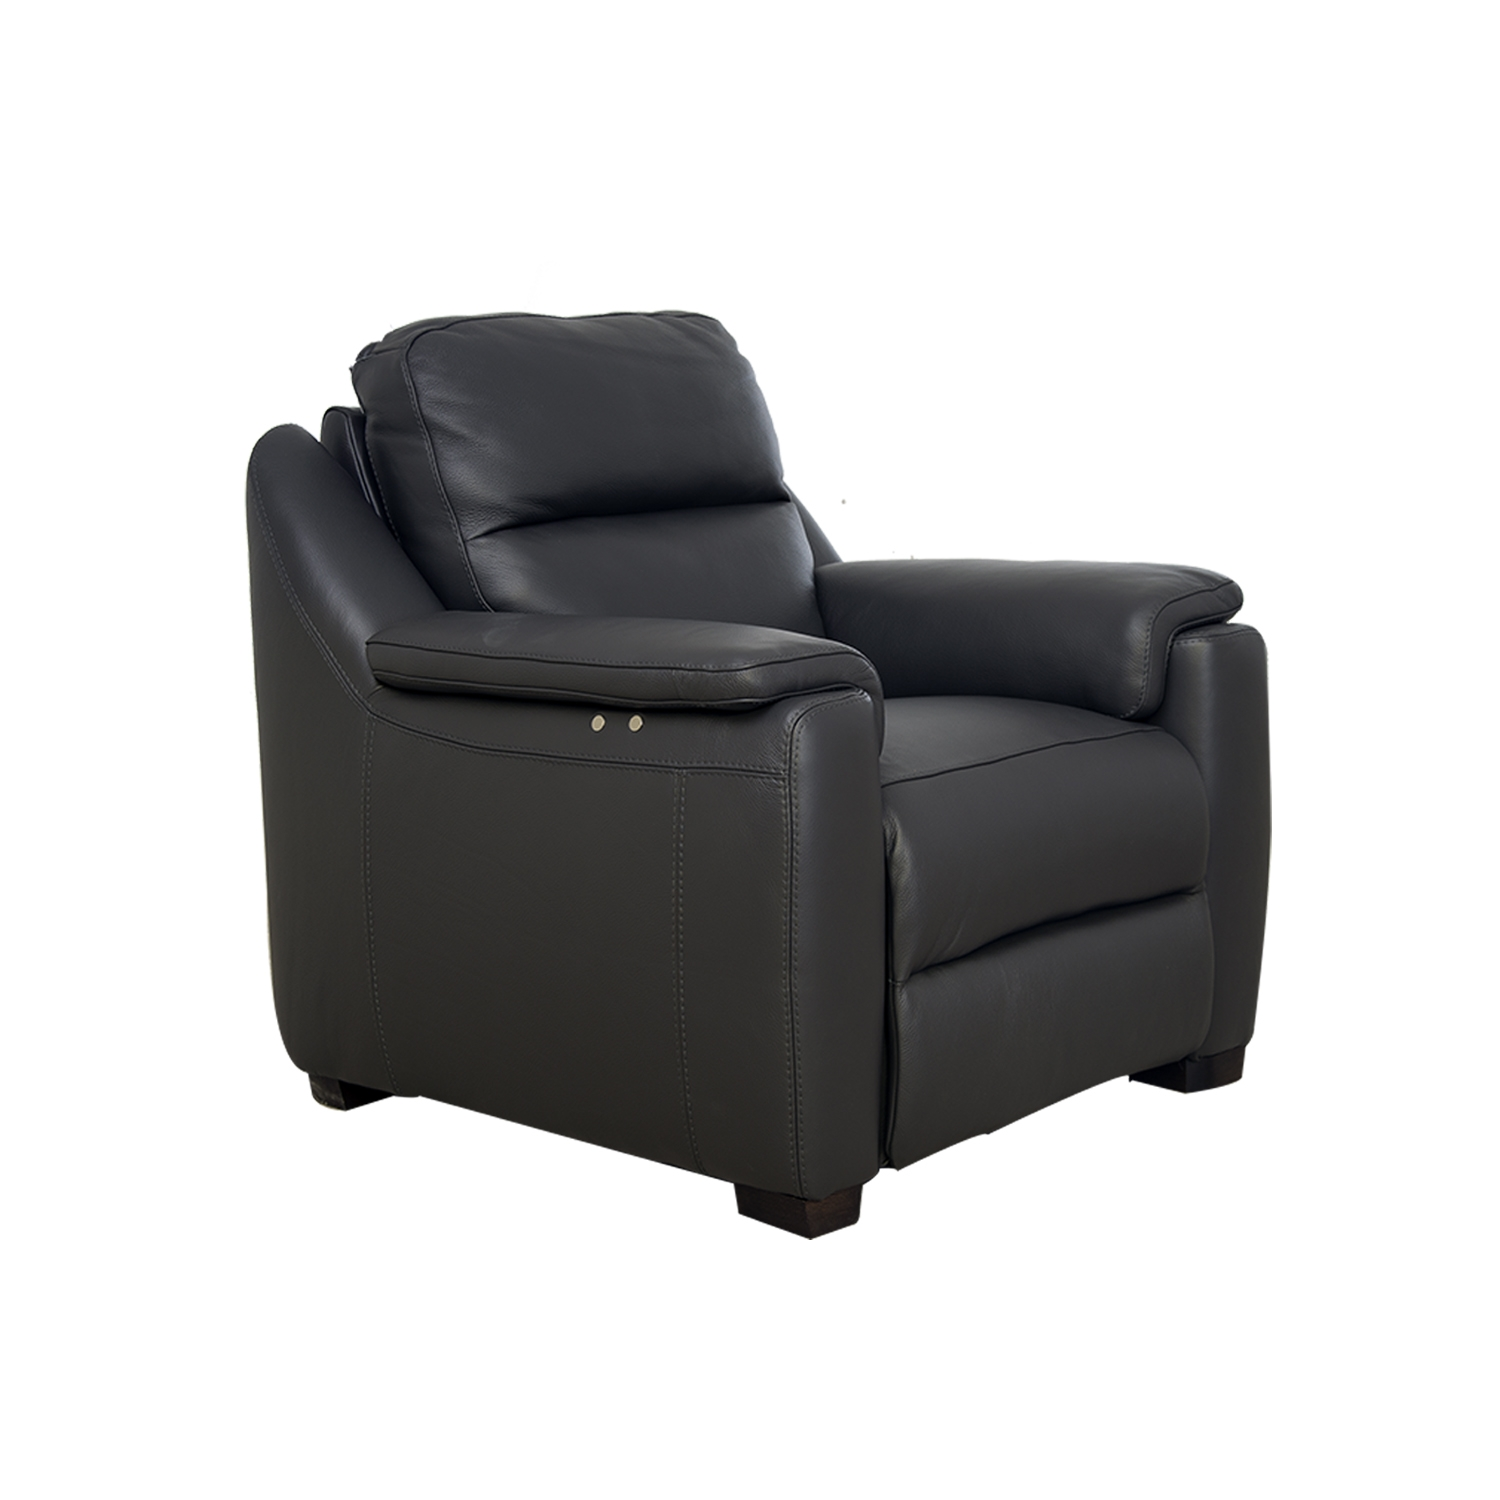 Image of Italia Living Parma Power Recliner Leather Chair, Dark Grey